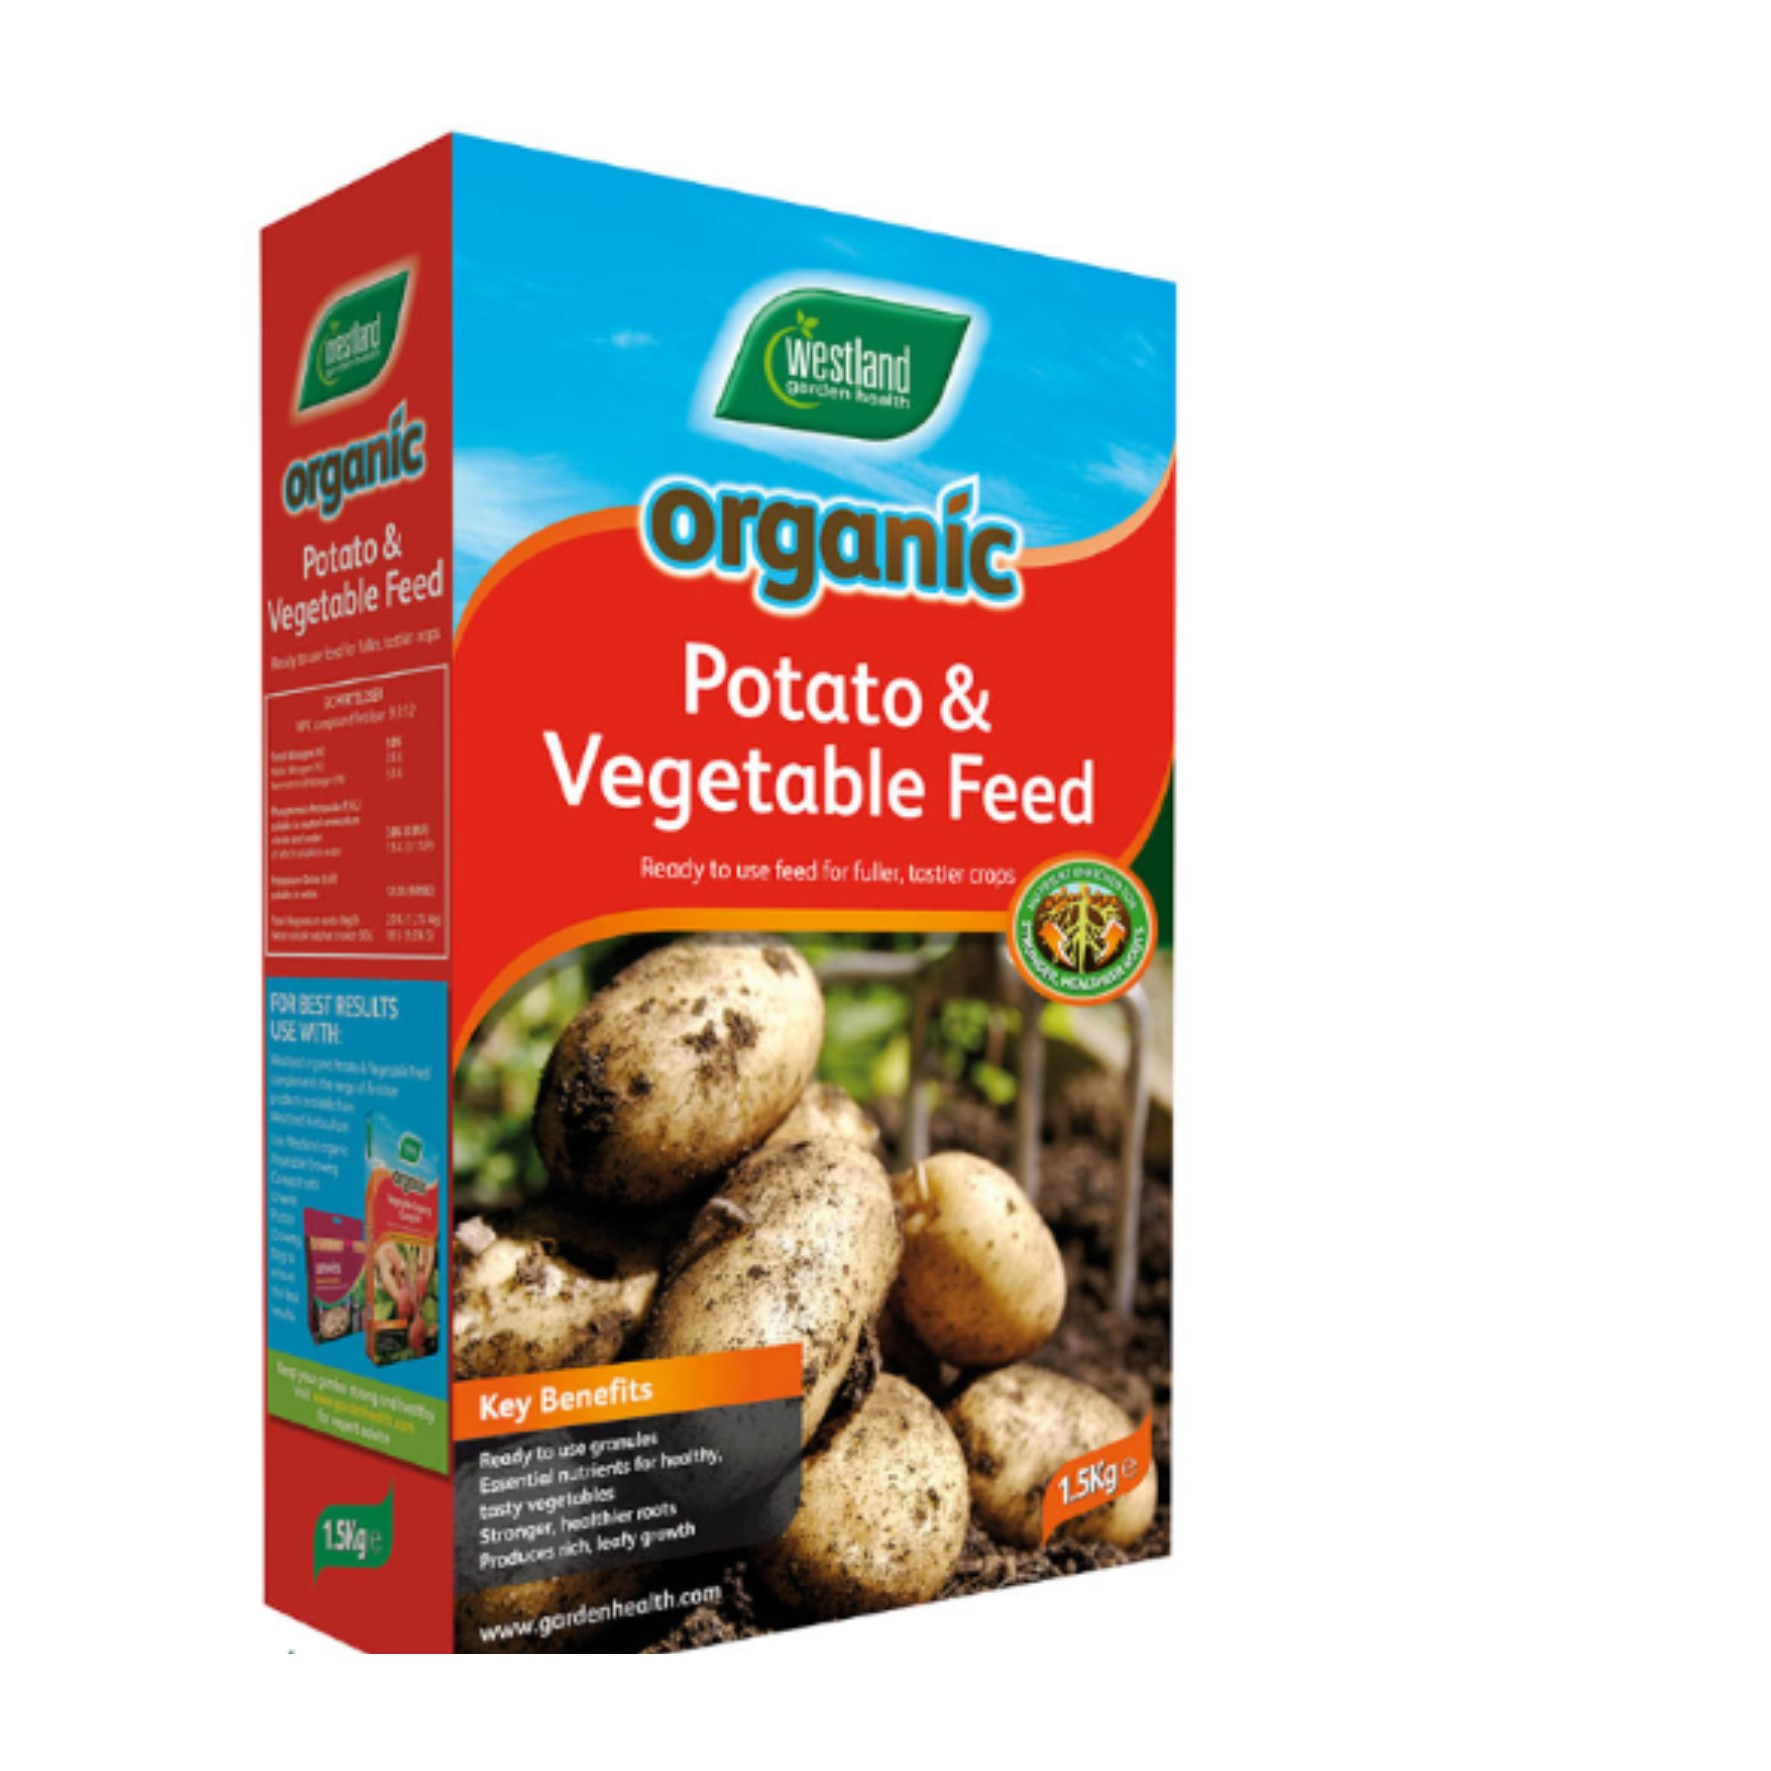 Potato & Vegetable Feed